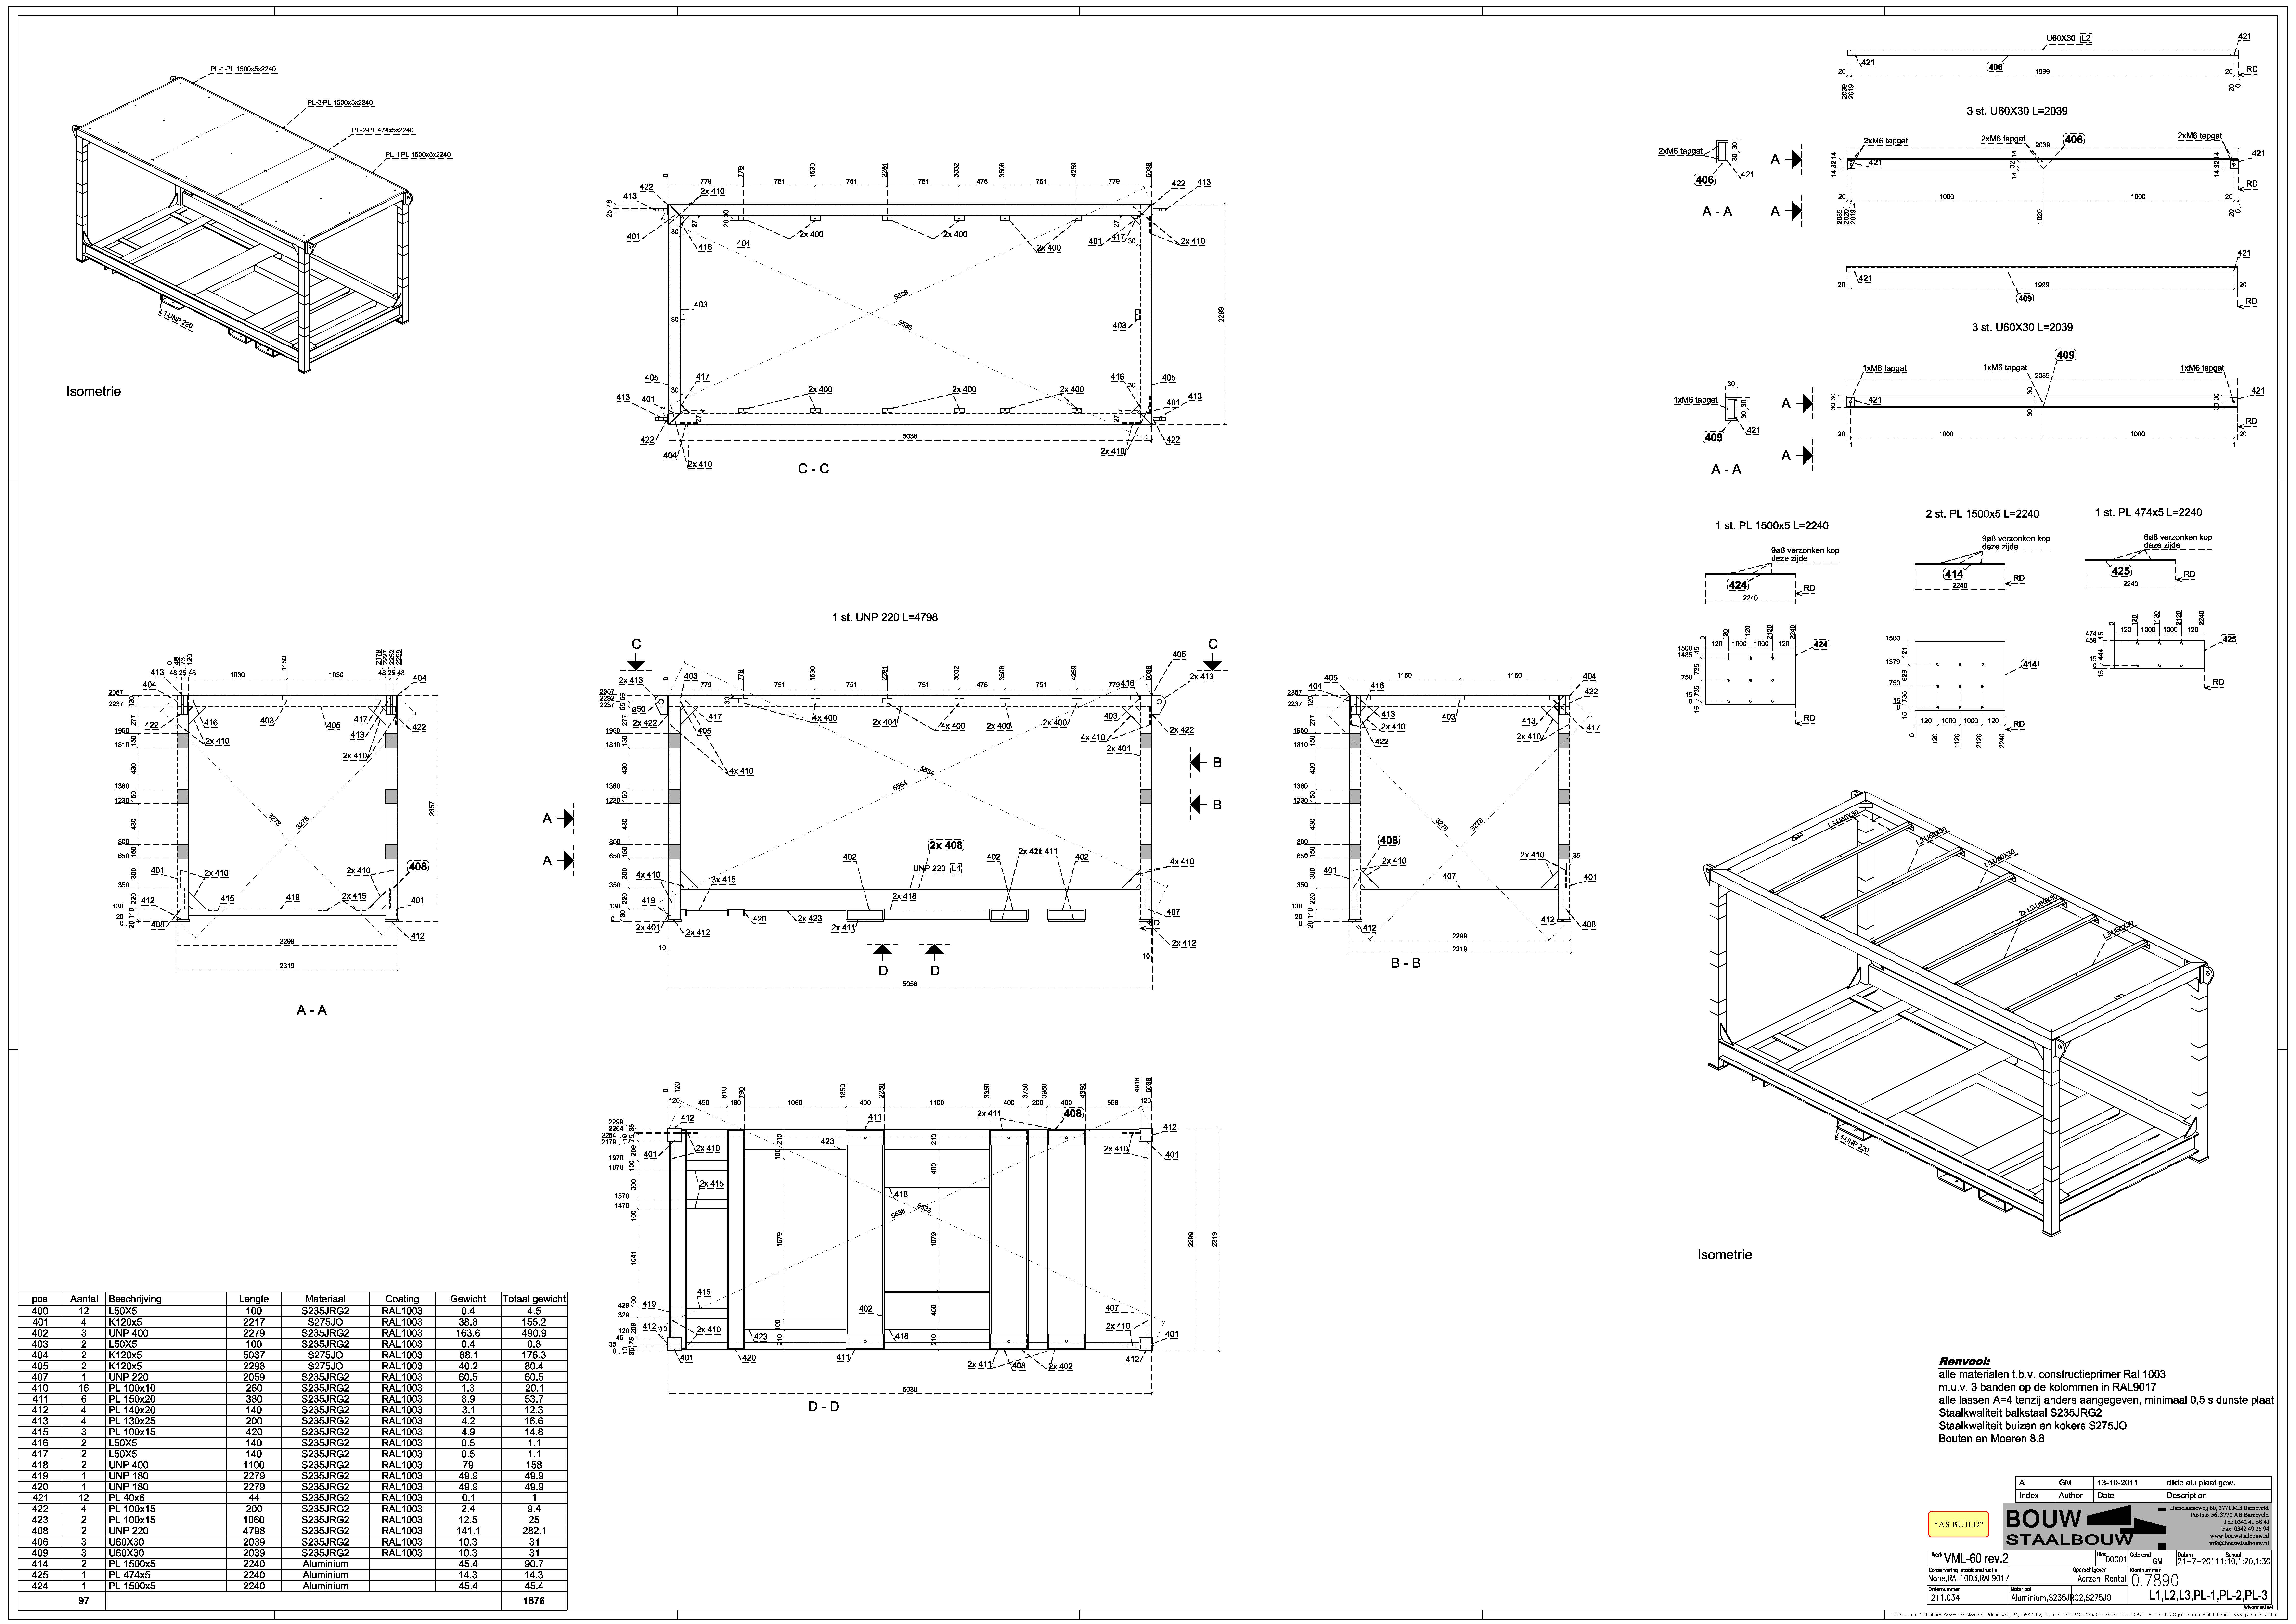 9362x6623 Solved Planelevation Views Of A Large Assembly Which Drawing